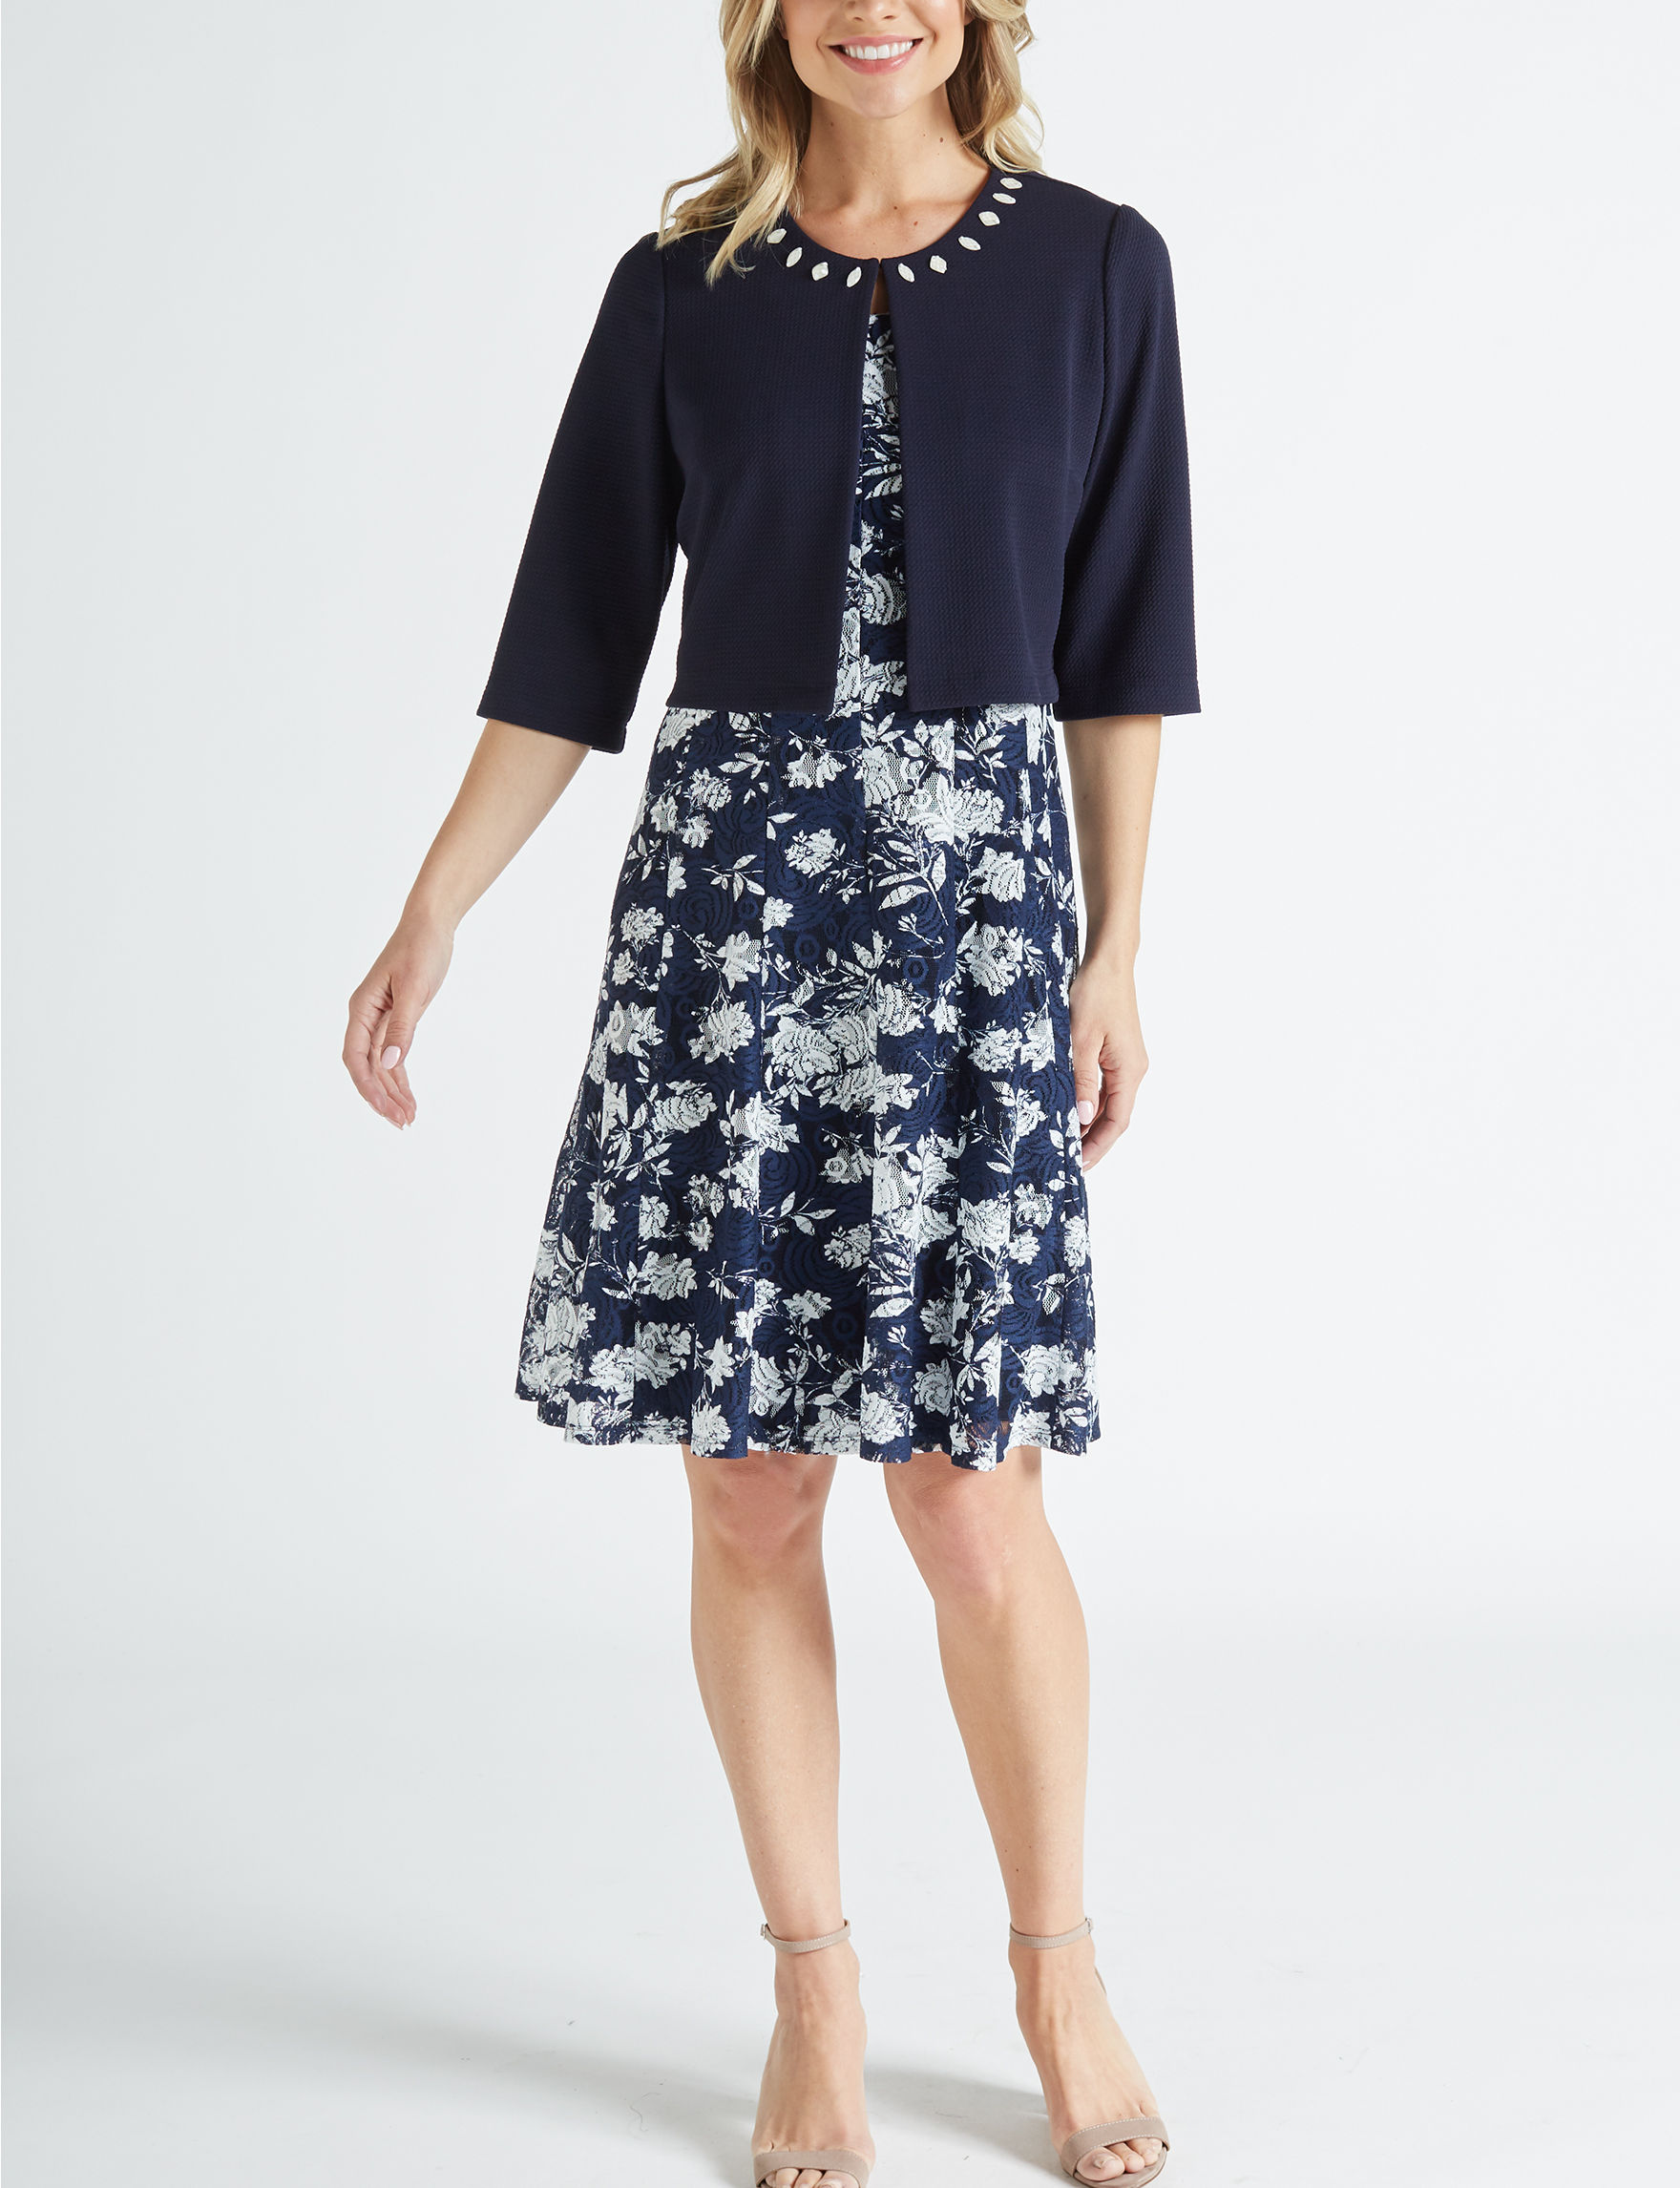 Perceptions White / Navy Everyday & Casual Jacket Dresses